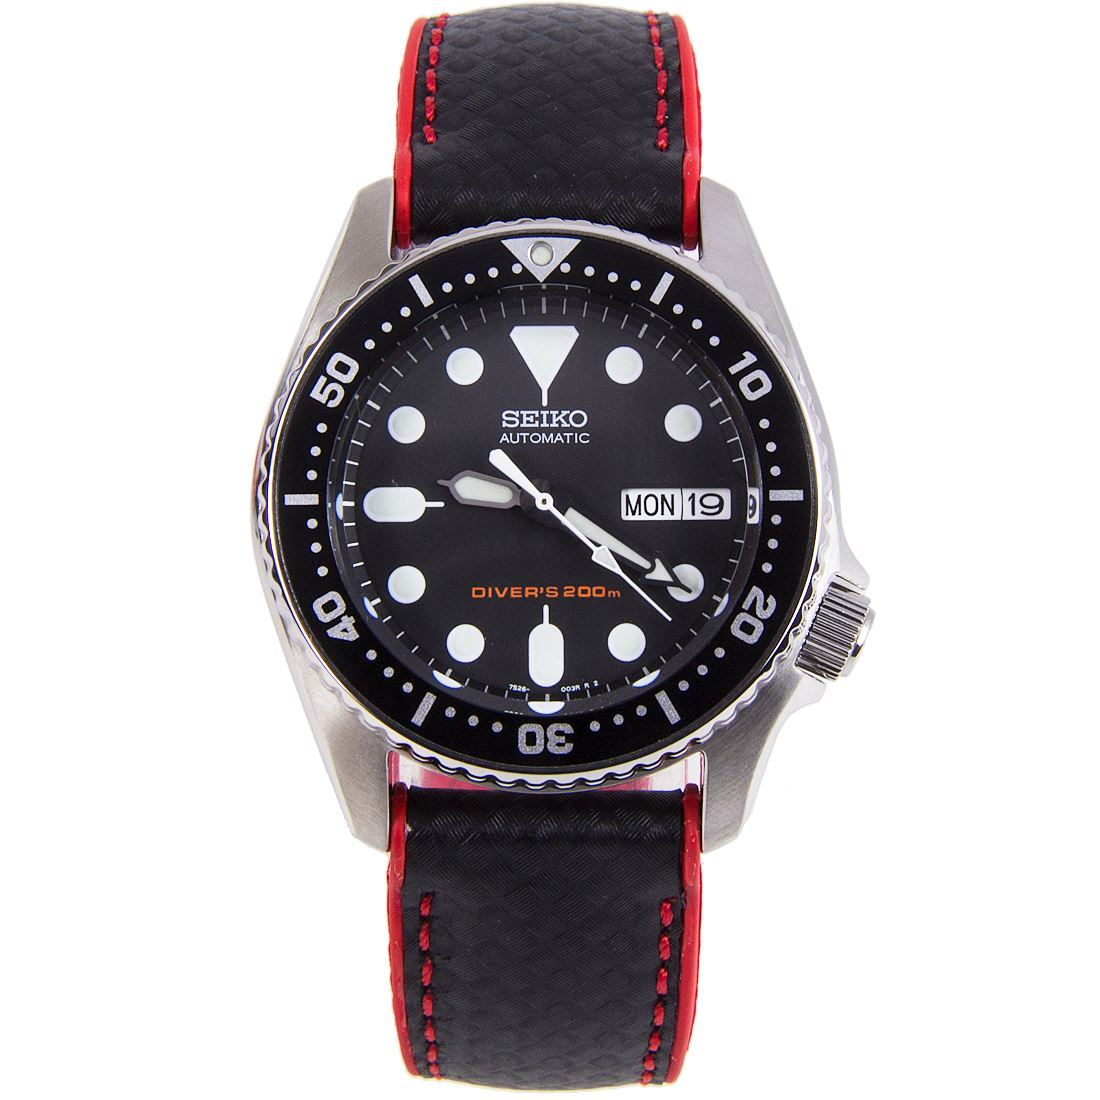 SKX013K1 Seiko Divers Automatic Watch with Hybrid Strap